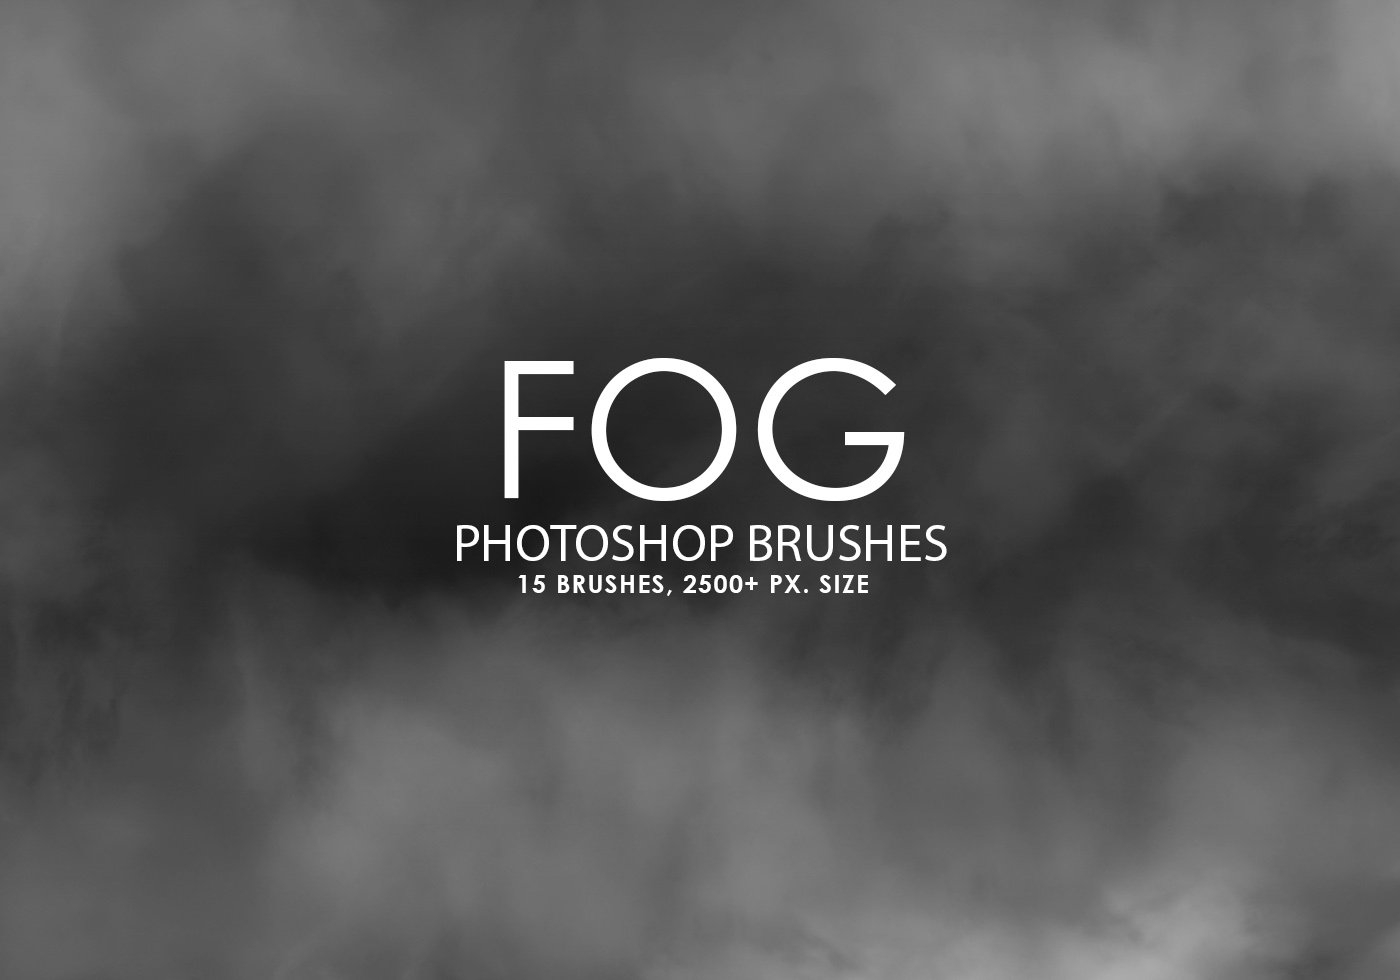 Fog brushes for photoshop cs5 free download